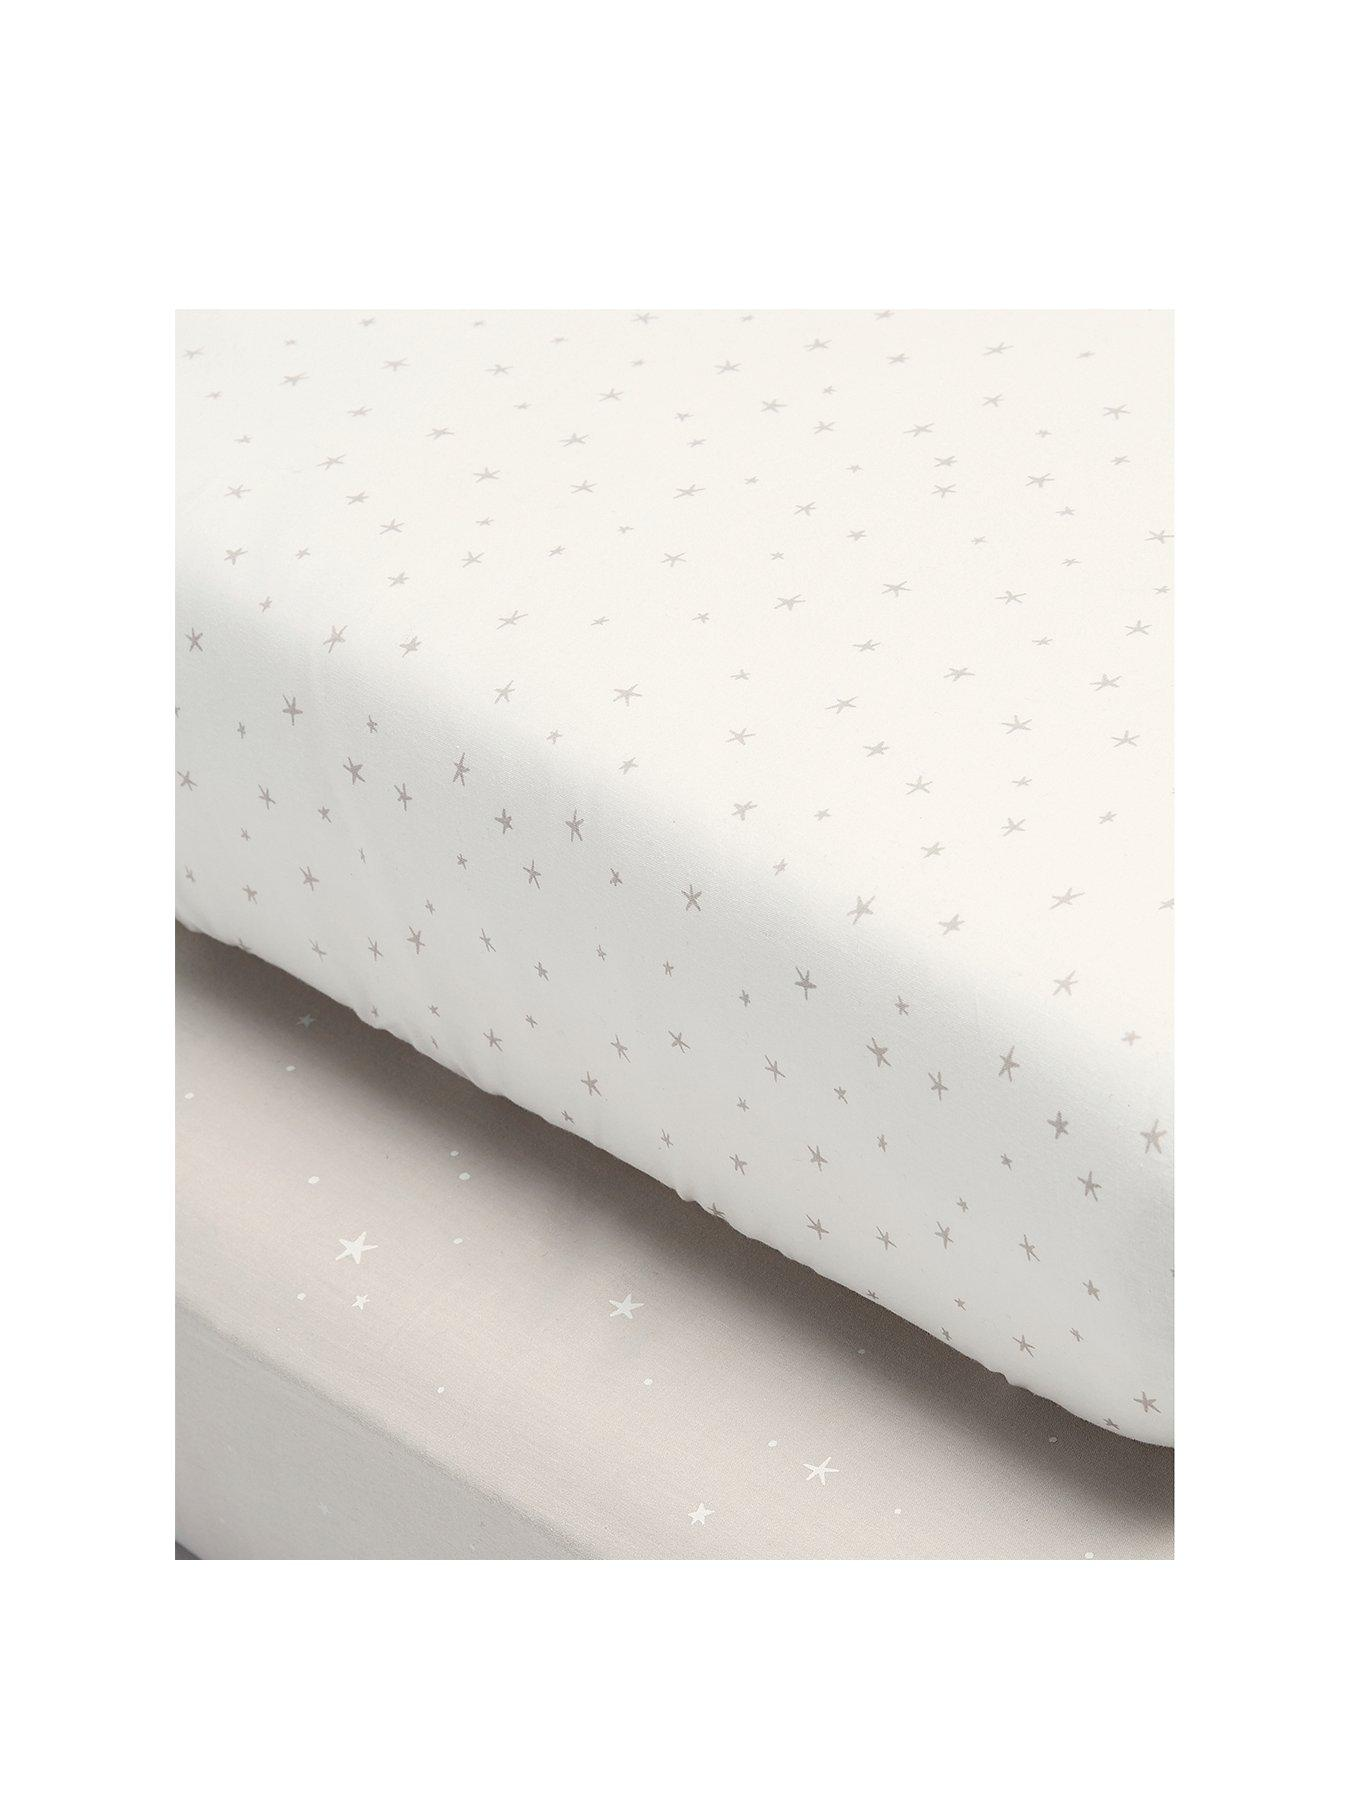 Mamas /& Papas Luxury Baby Nappy Changing Mattress with Machine Washable Cover /& Detachable Pillow Welcome to the World